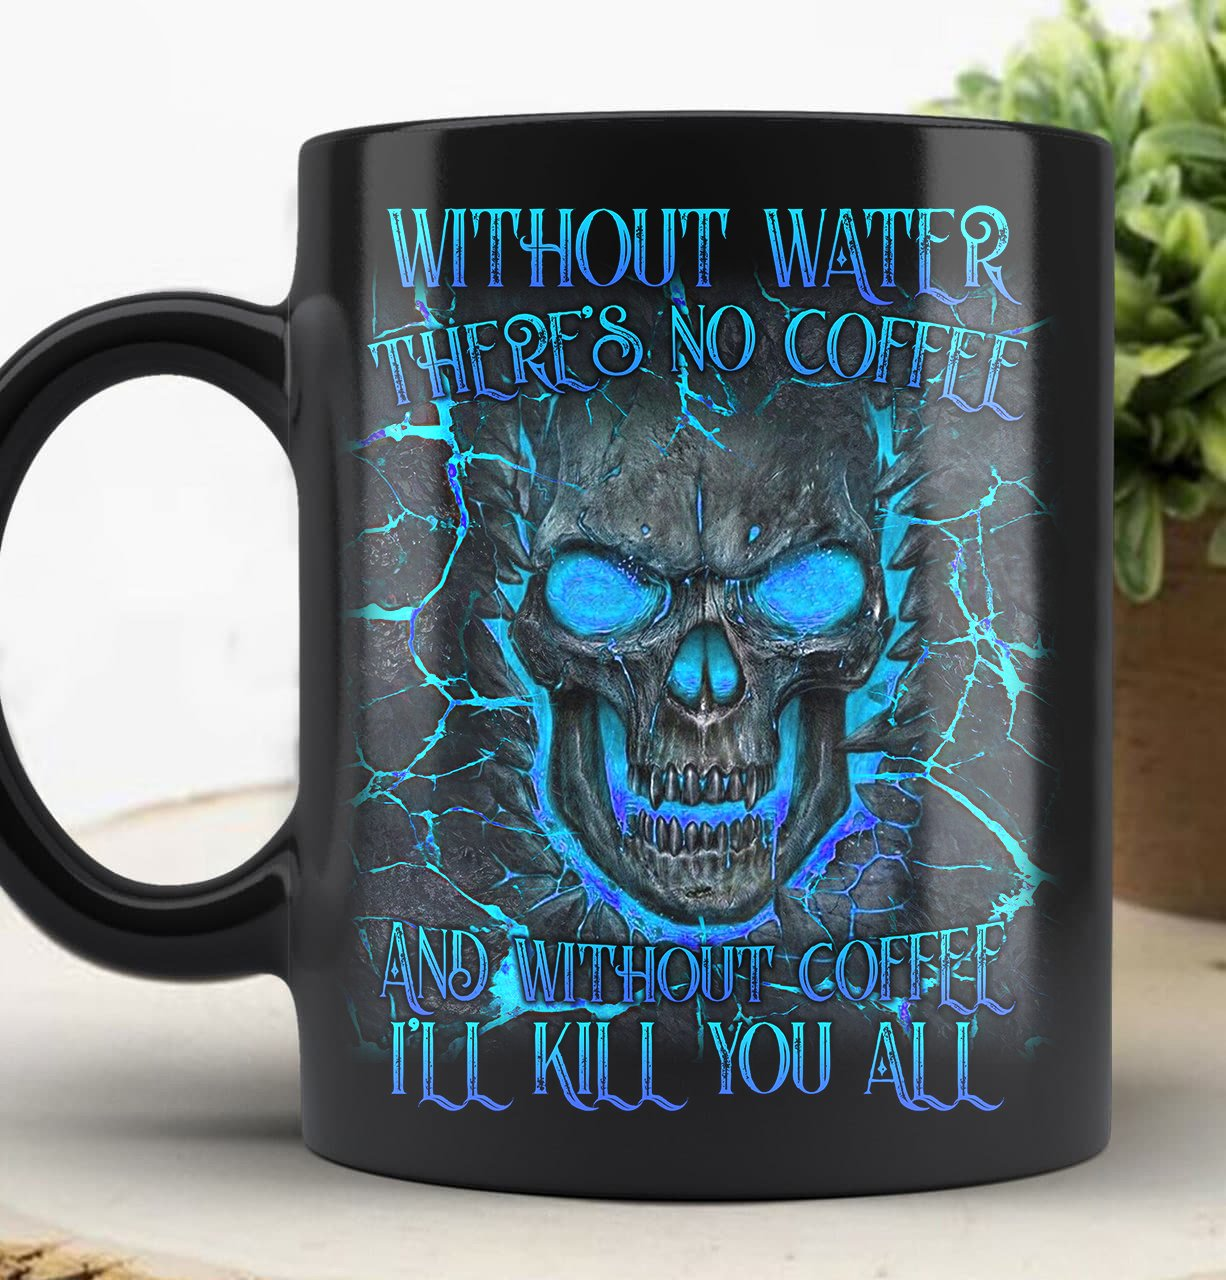 Blue Lightning Skull without water theres no coffee Mug